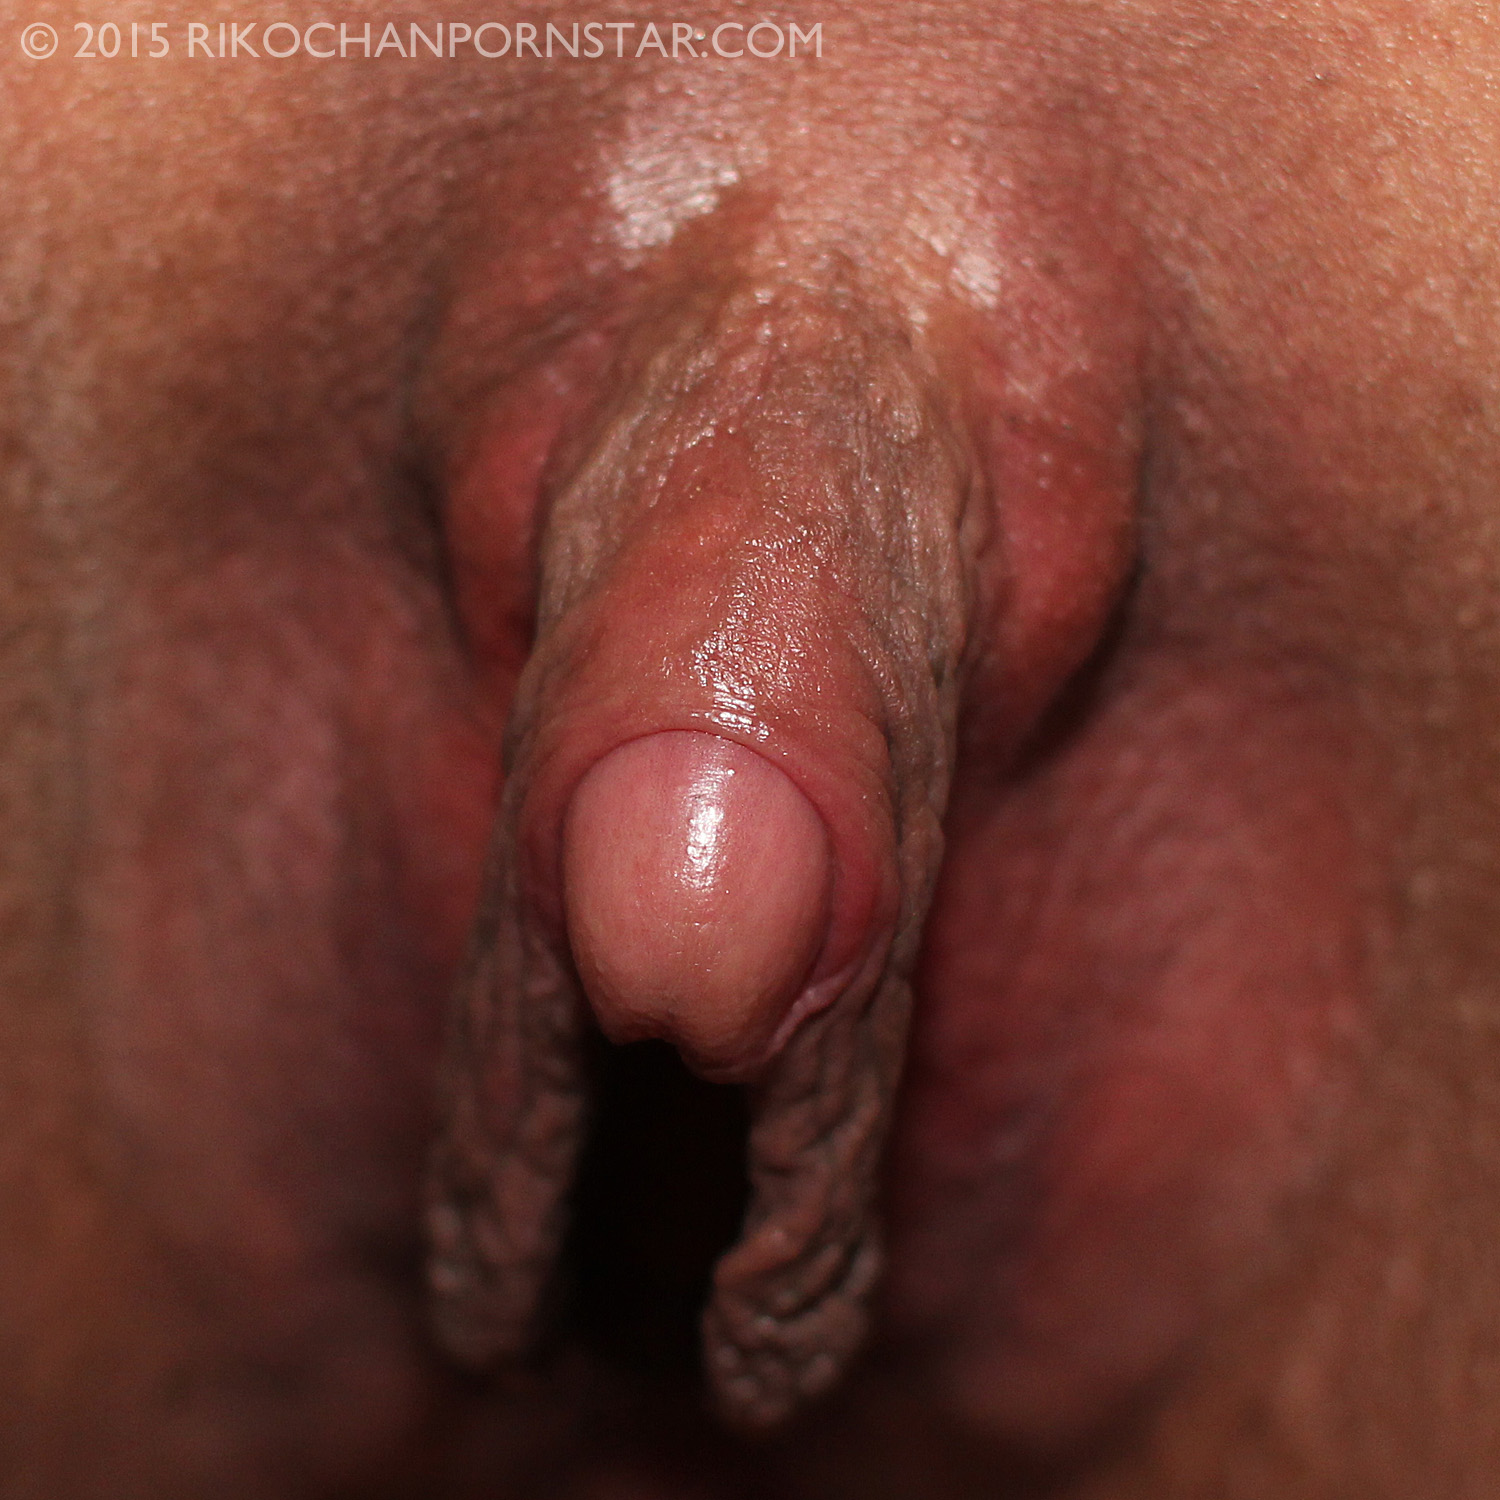 Pulsating ebony clitoris this rather